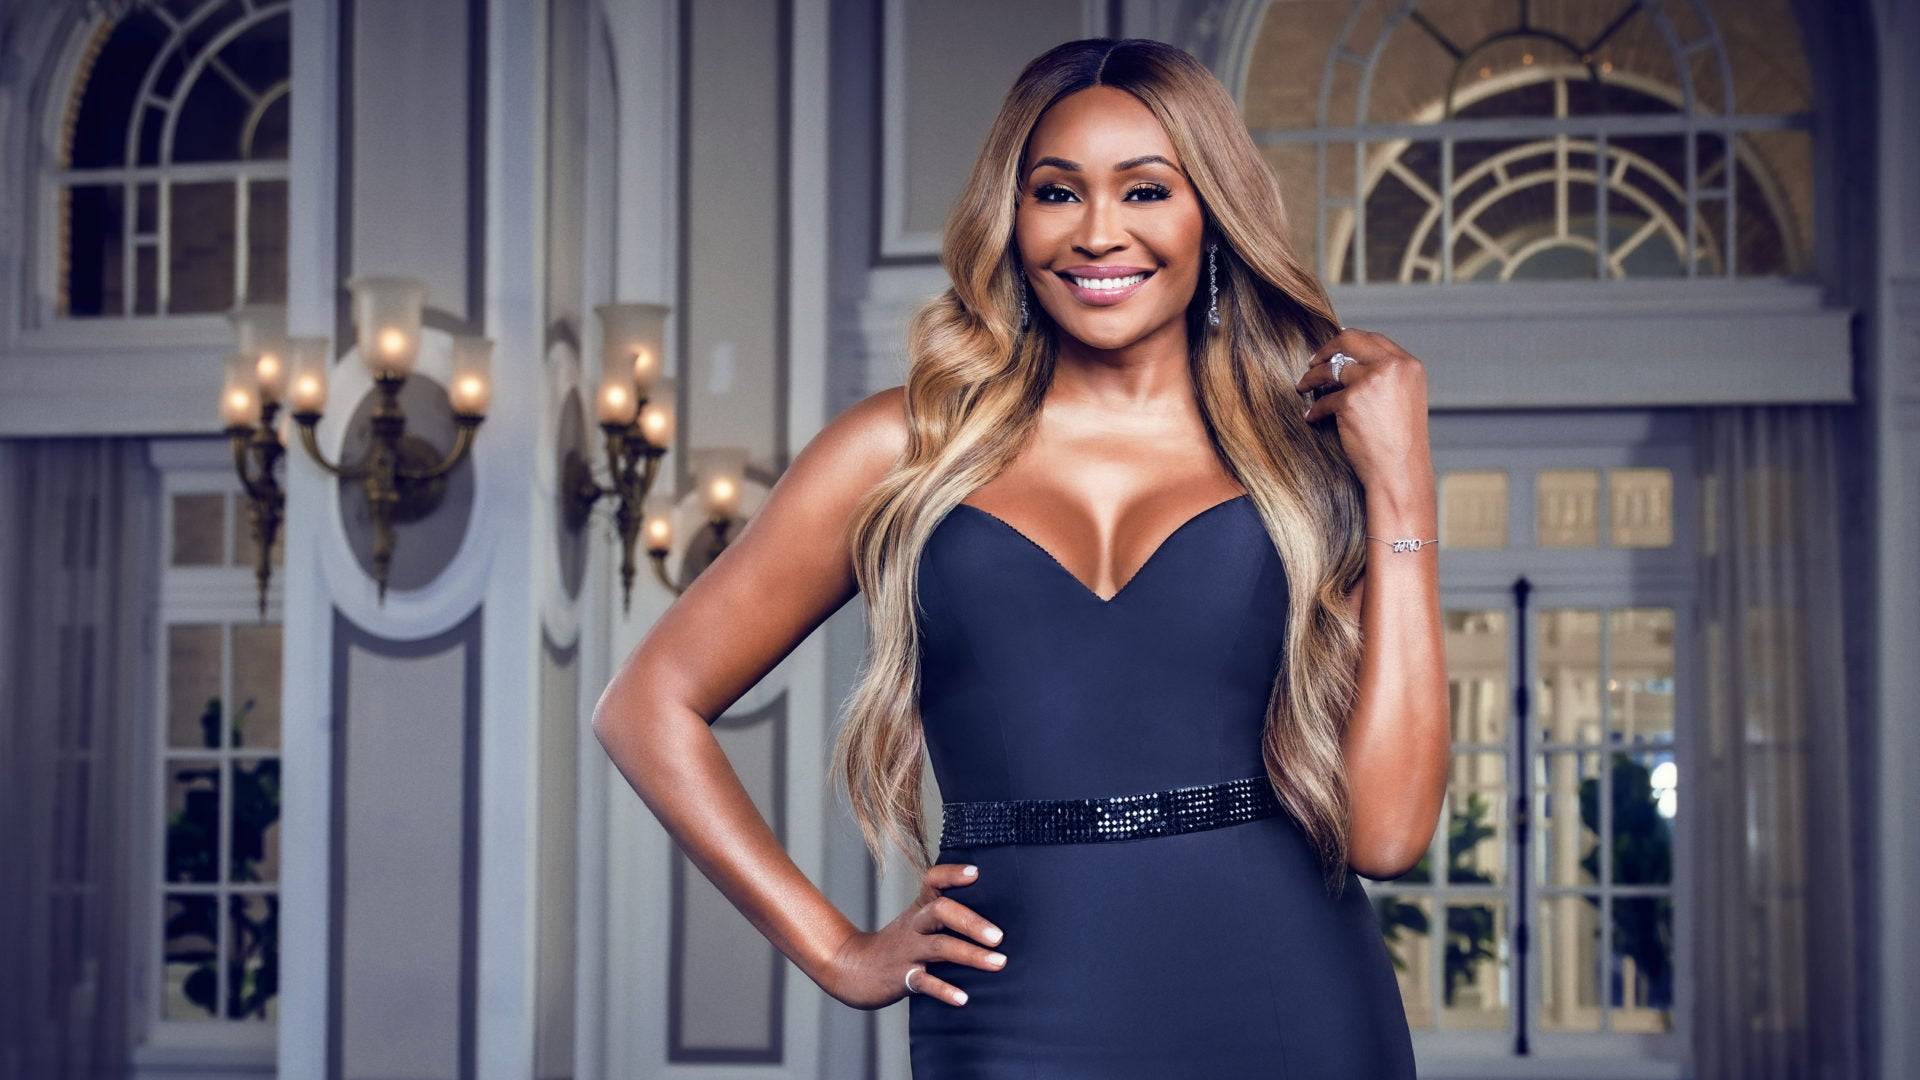 Cynthia Bailey Shows Off Her Beach Body In This Photo - Check It Out Here